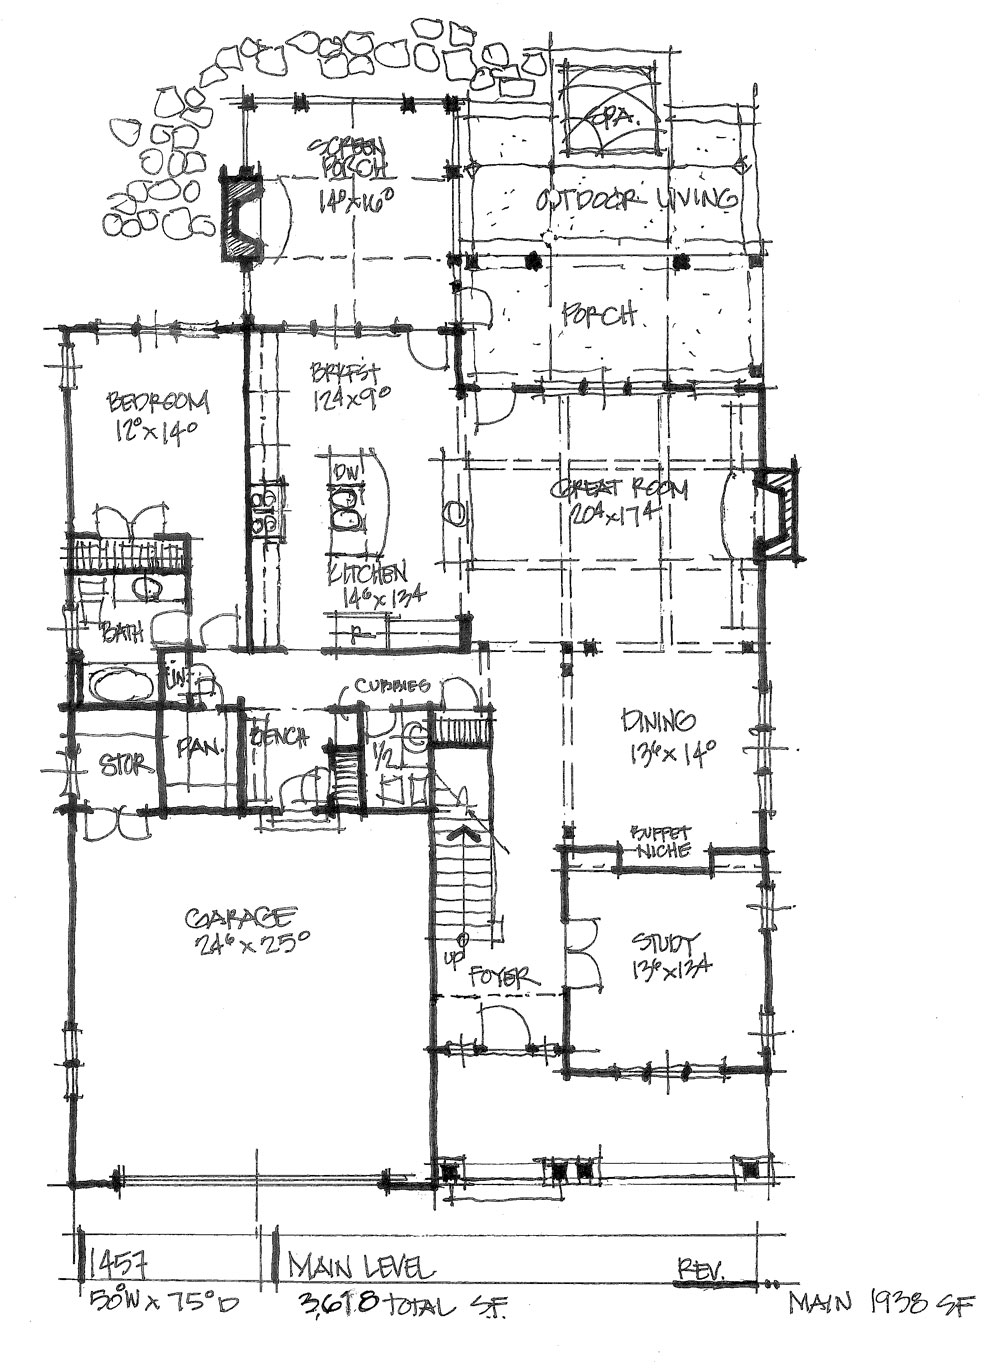 Check out the first floor plan of conceptual house plan 1457.